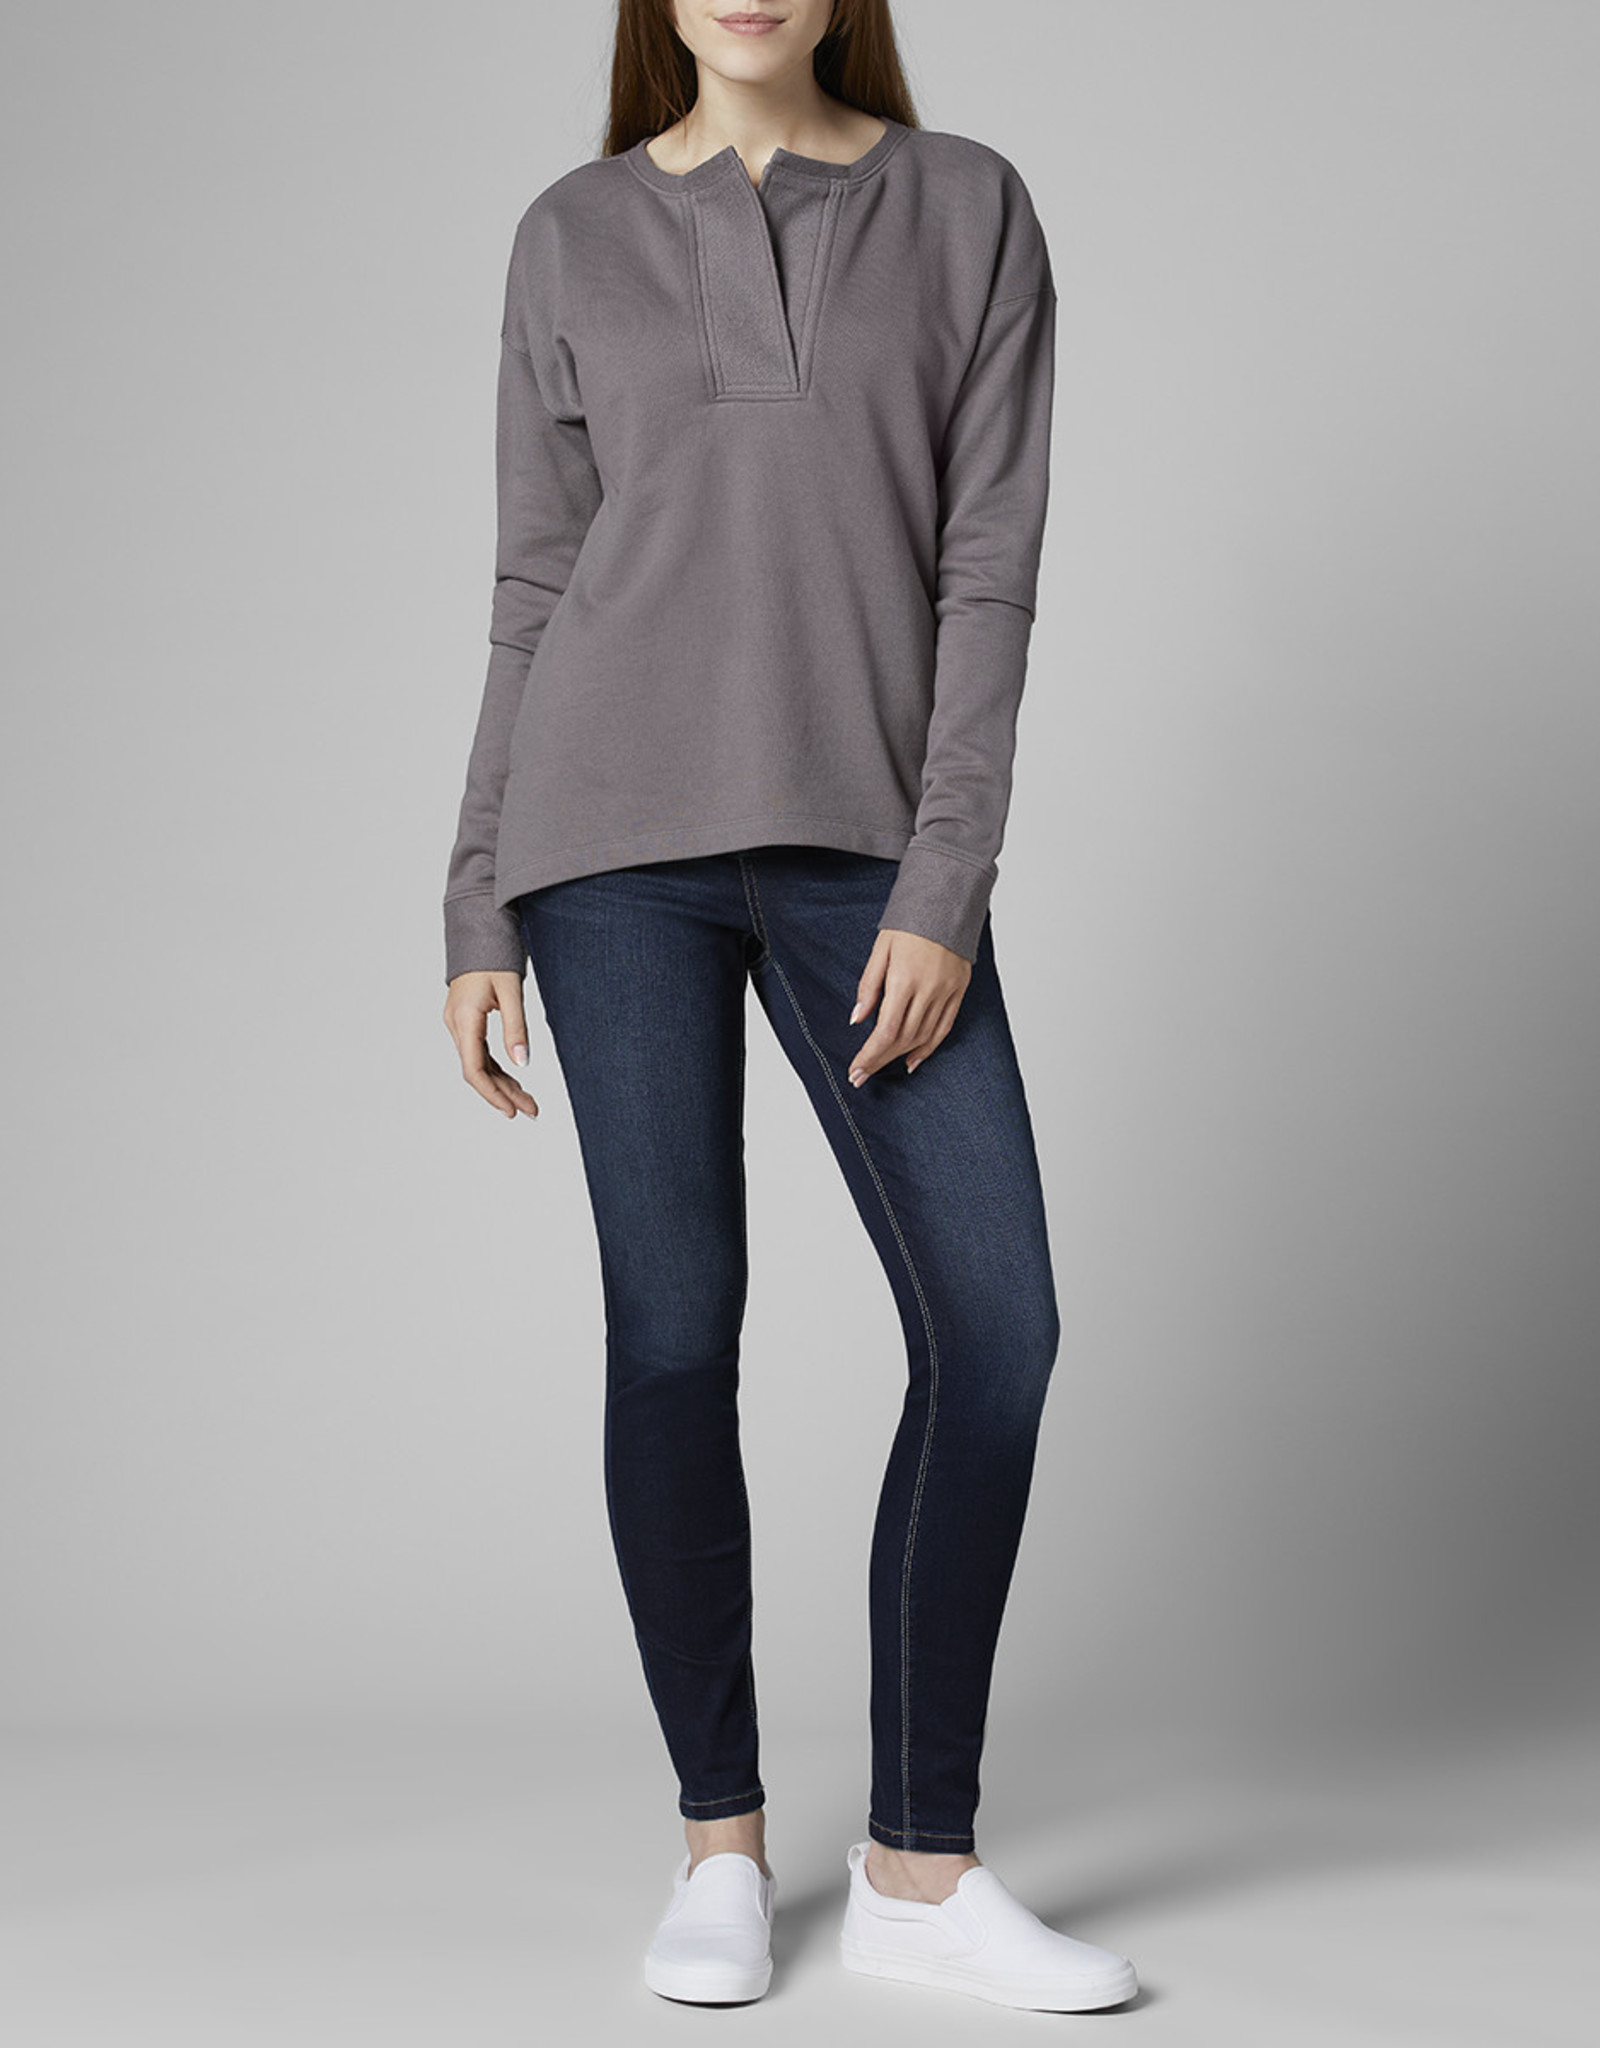 JAG JEANS Tina Pullover